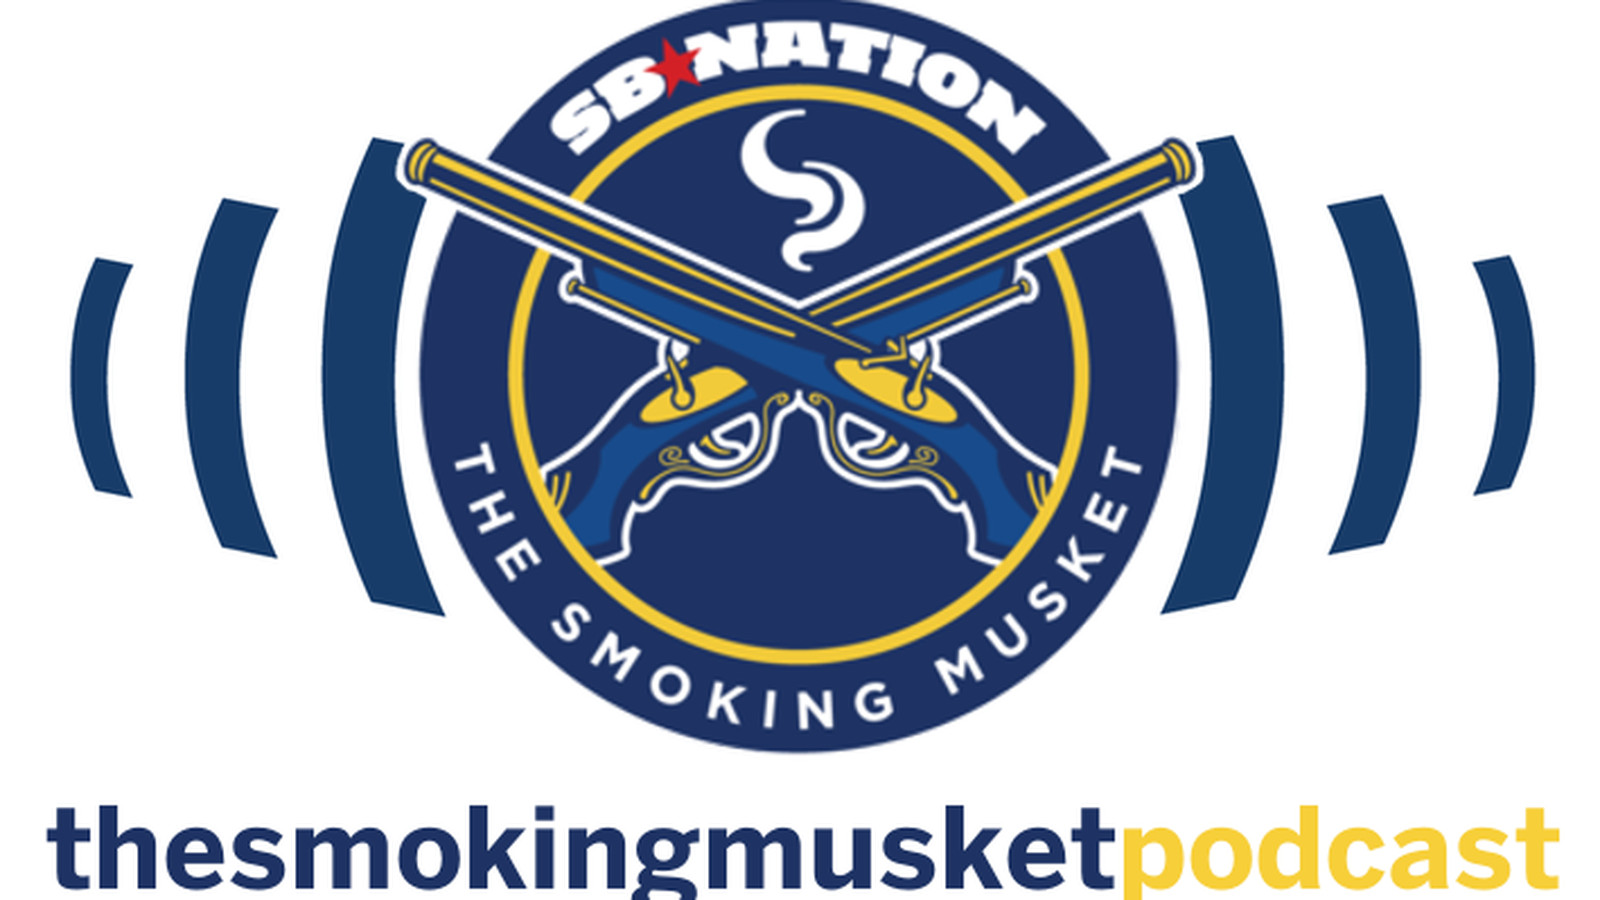 Smokingmusketpodcastlogo.0.0.0.0